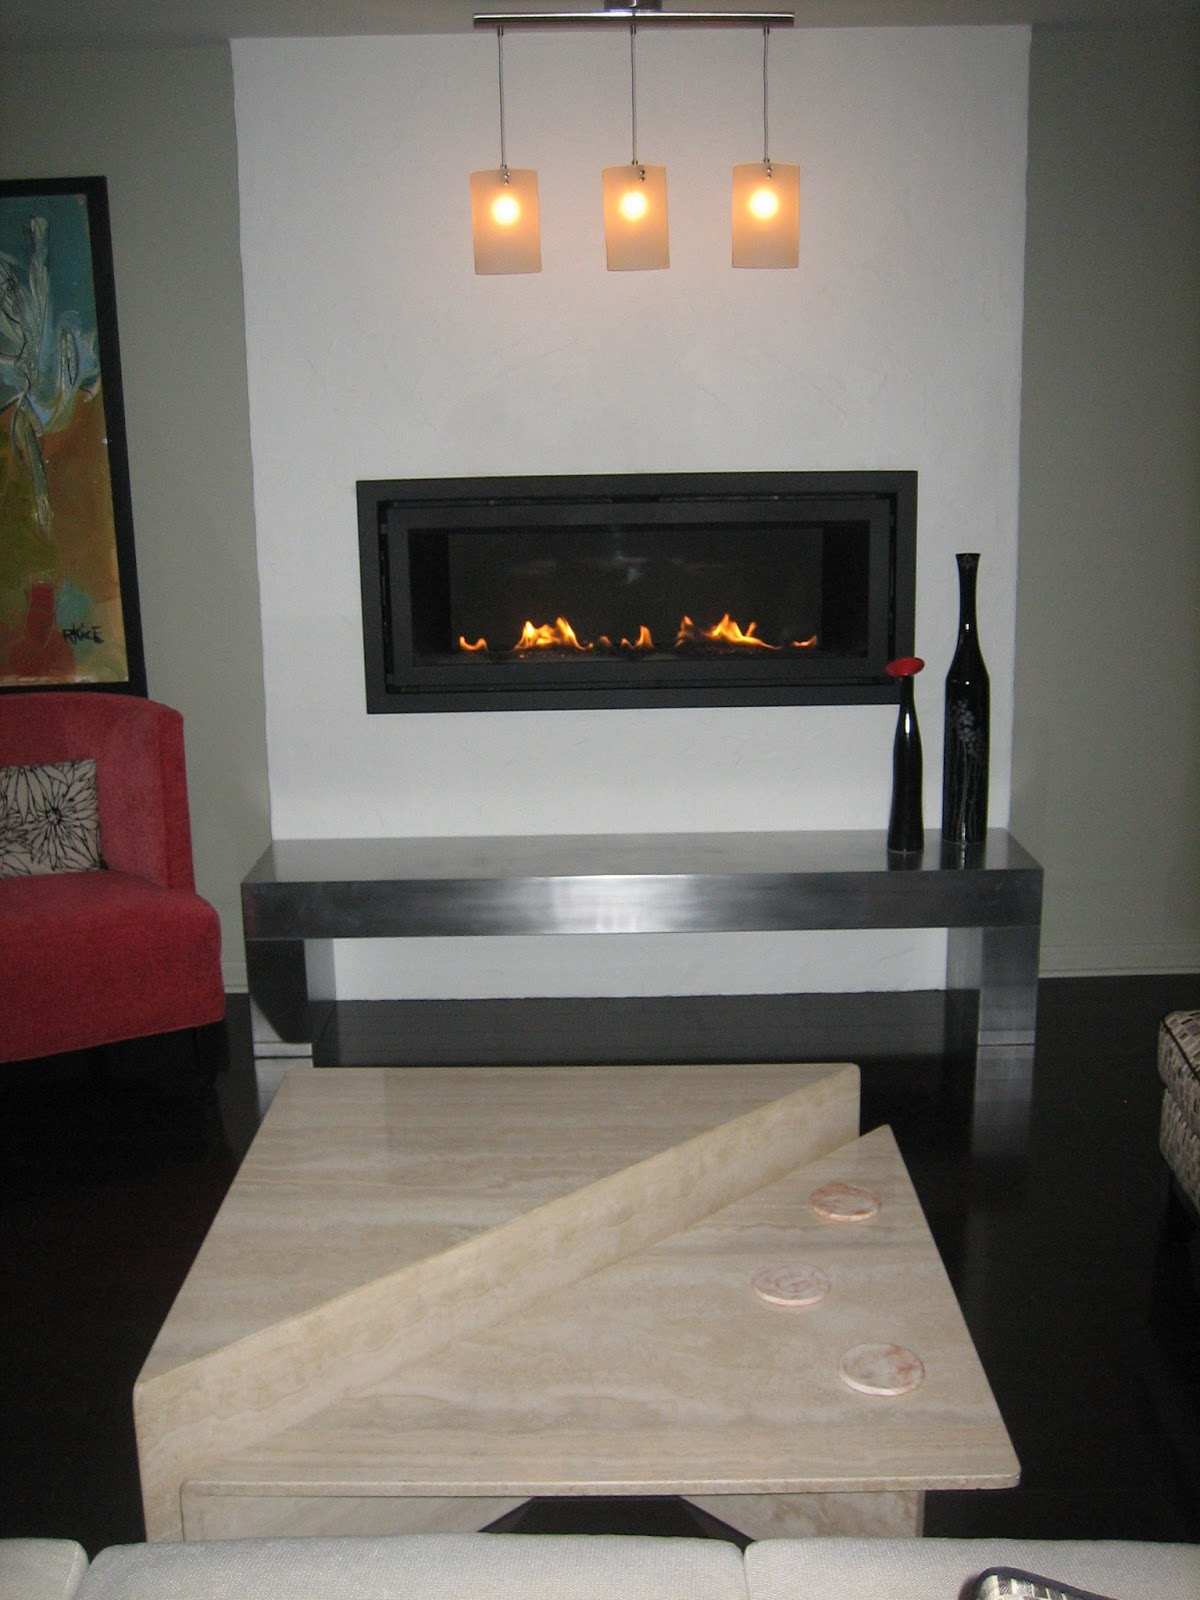 Passive Houses and Bio-ethanol Fireplaces: To use a fireplace or not? - Passive Houses And Fireplaces: Bio-ethanol Ventless Fireplace